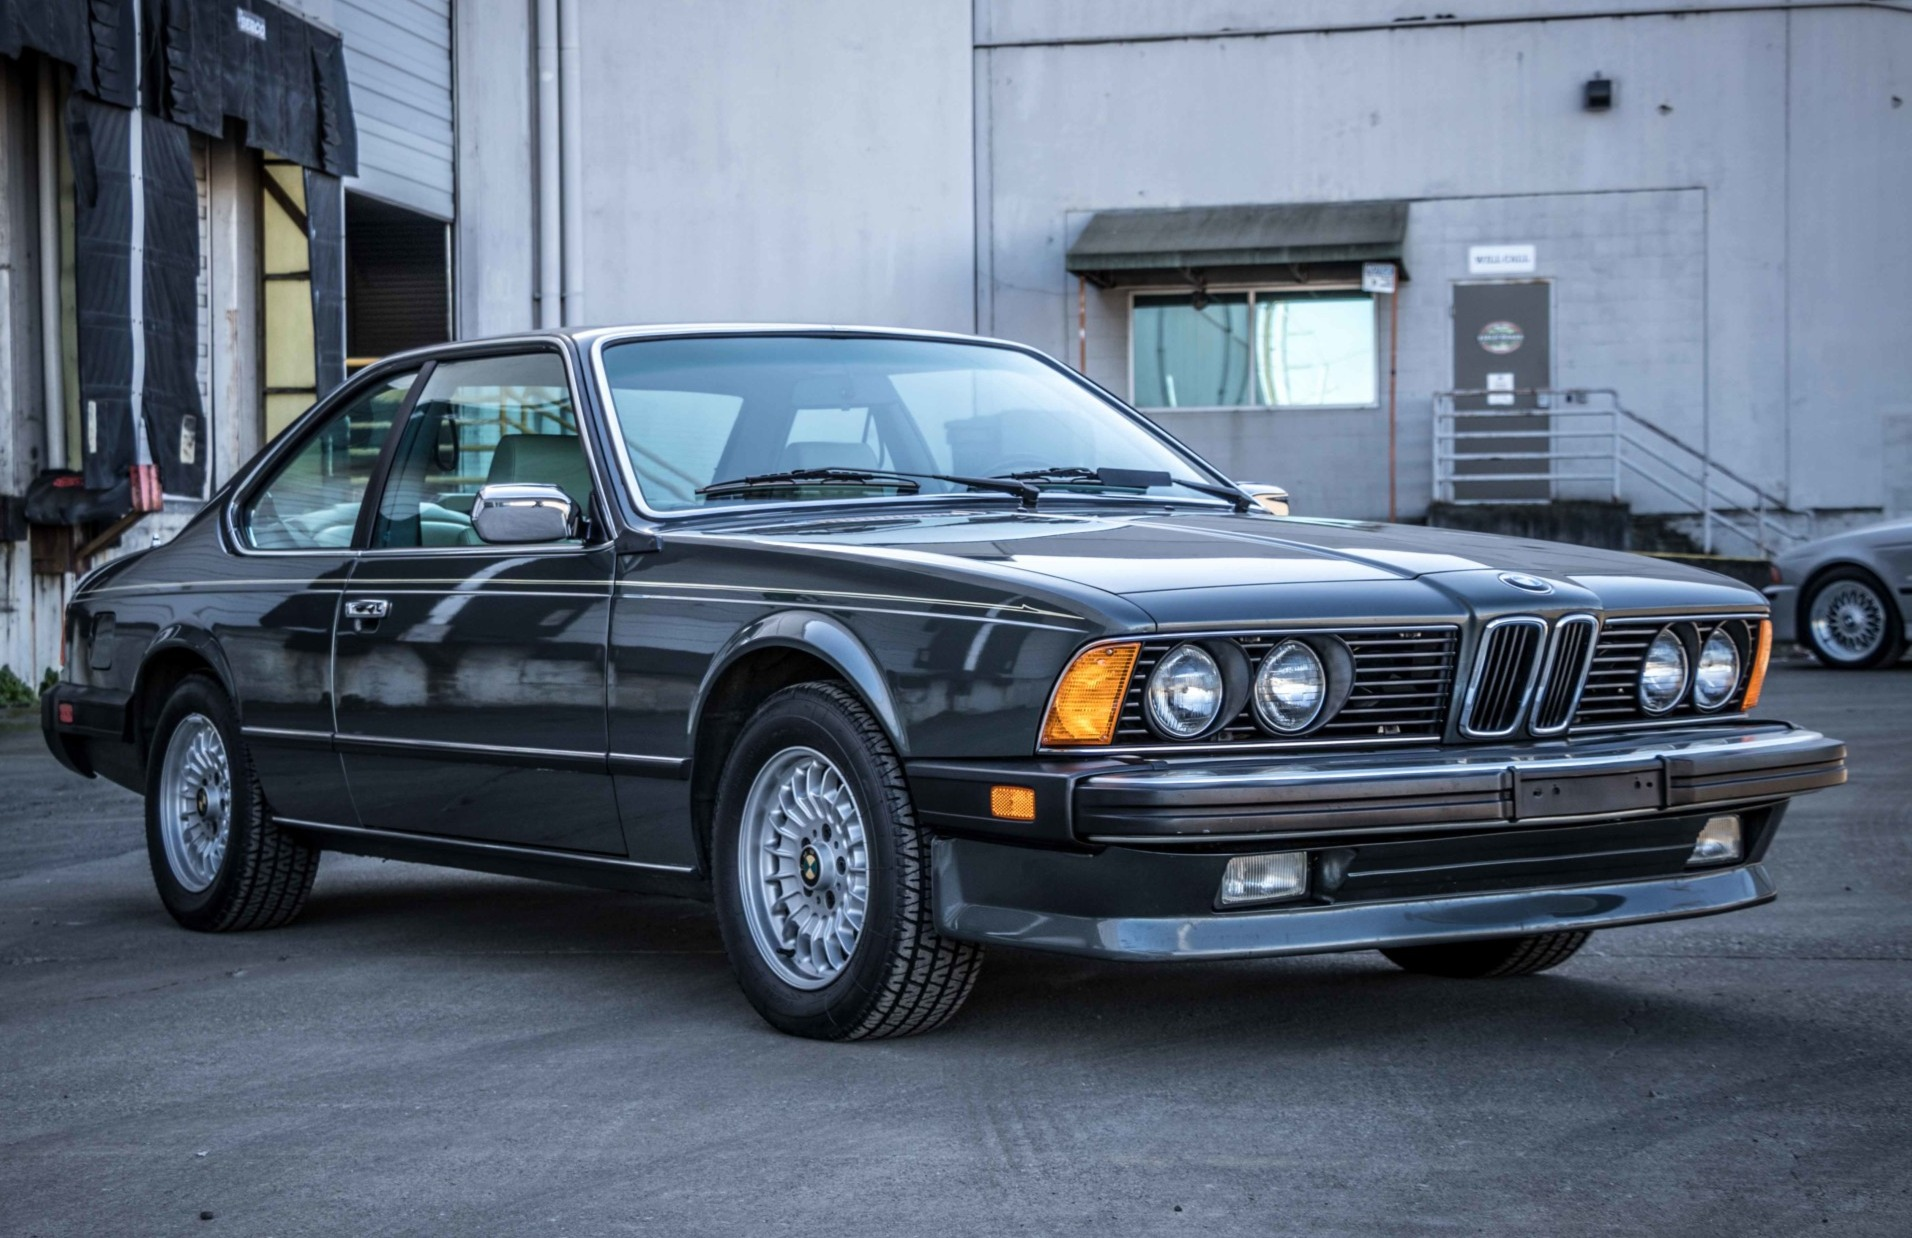 hight resolution of 60k mile 1986 bmw 635csi for sale on bat auctions sold for 25 000 bmw e9 coupe rust diagram wheel wells